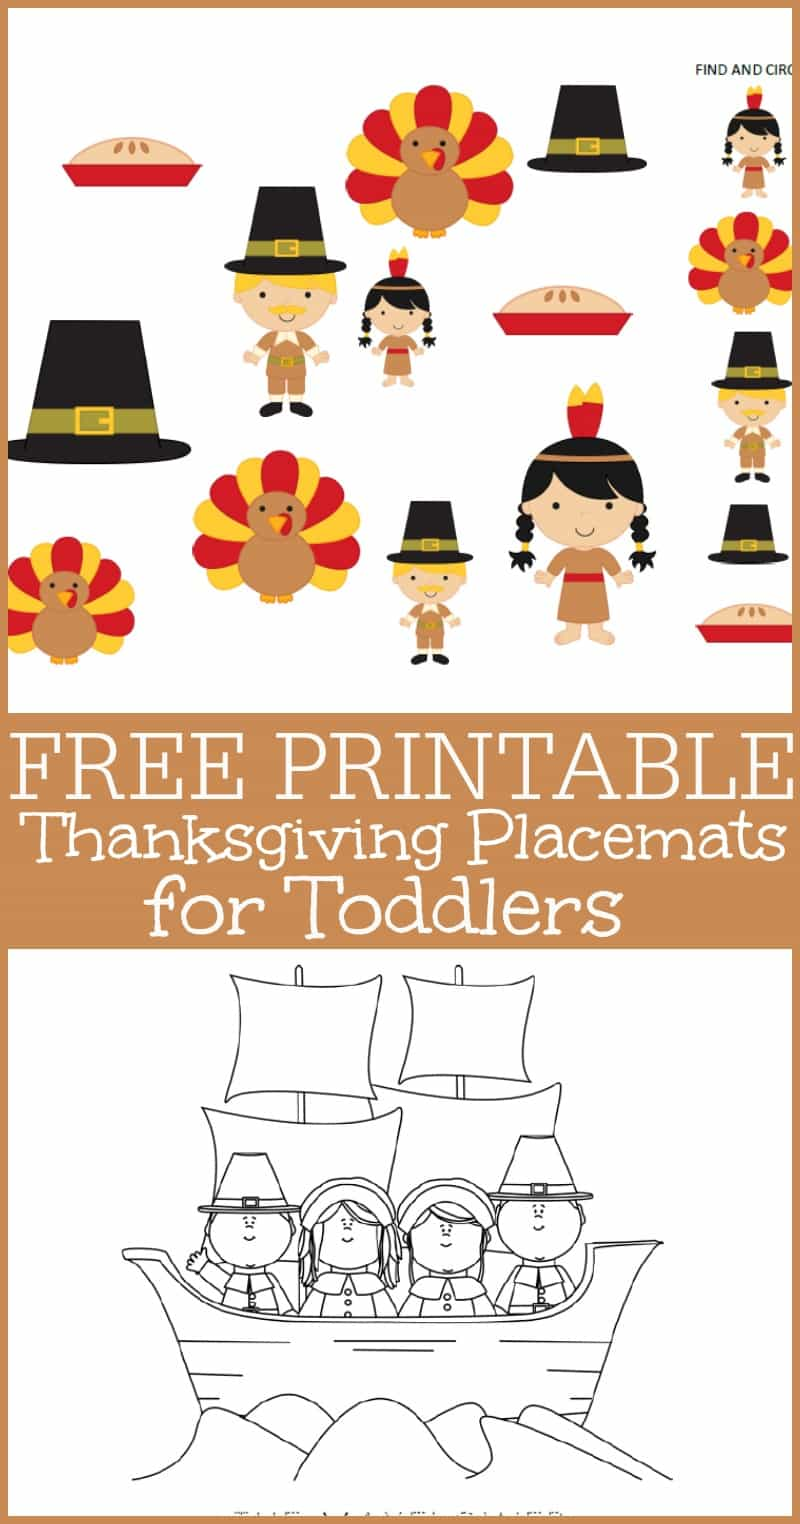 printable-thanksgiving-placemats-for-toddlers